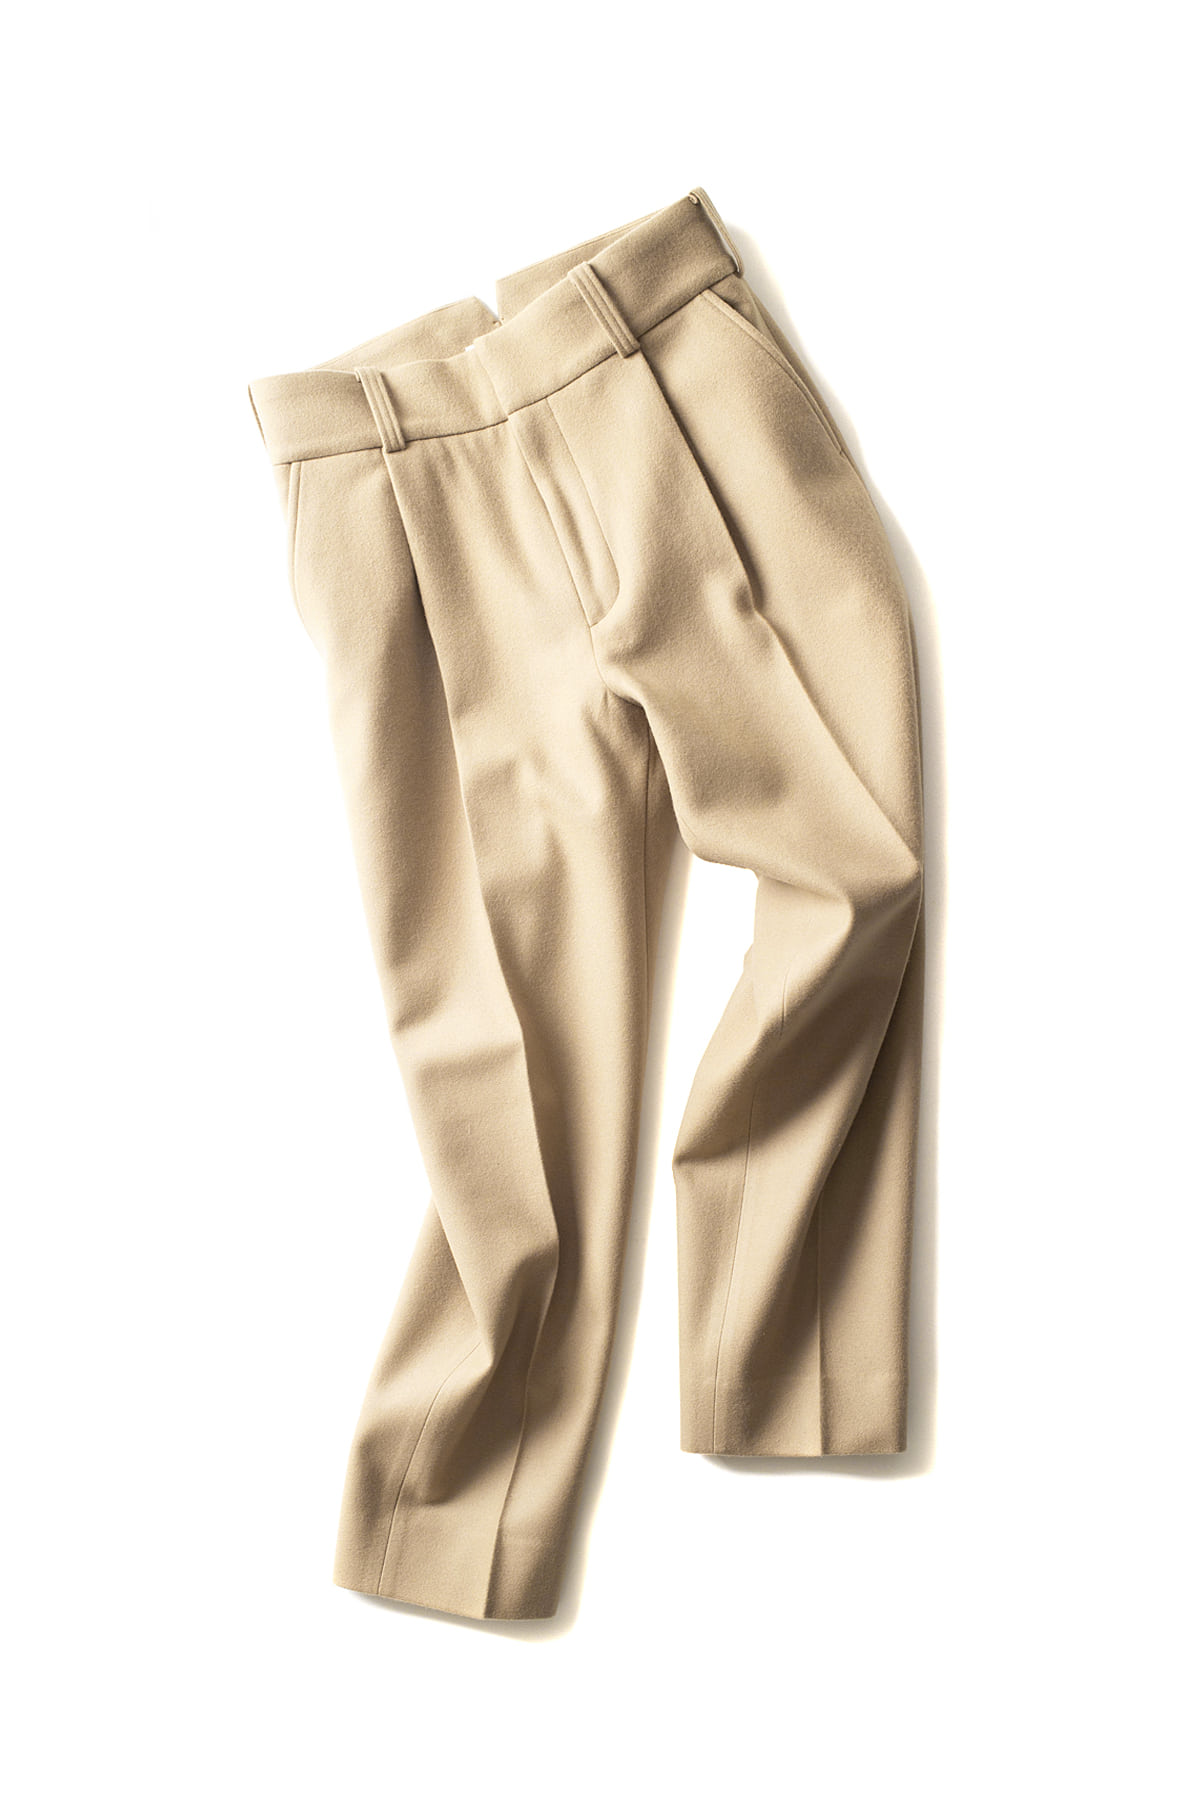 KURO : One Tuck Tapered Trouser (Beige)